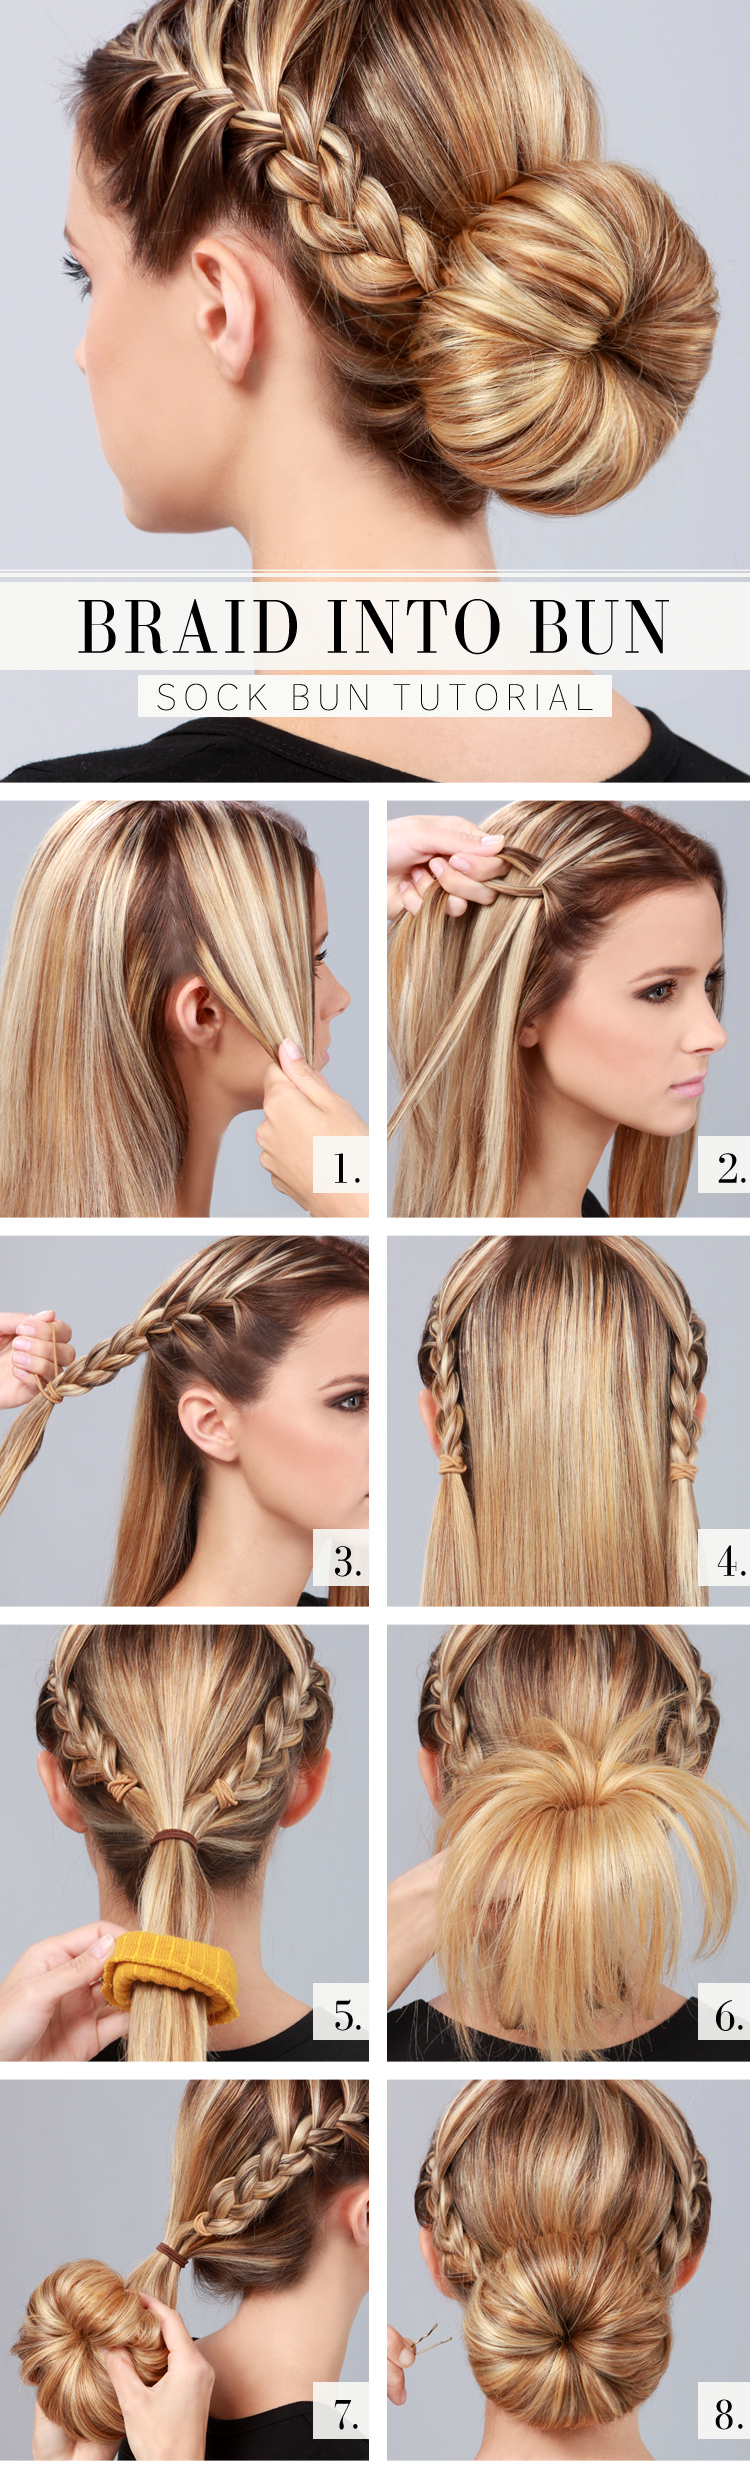 Braid Into Bun Hairstyle